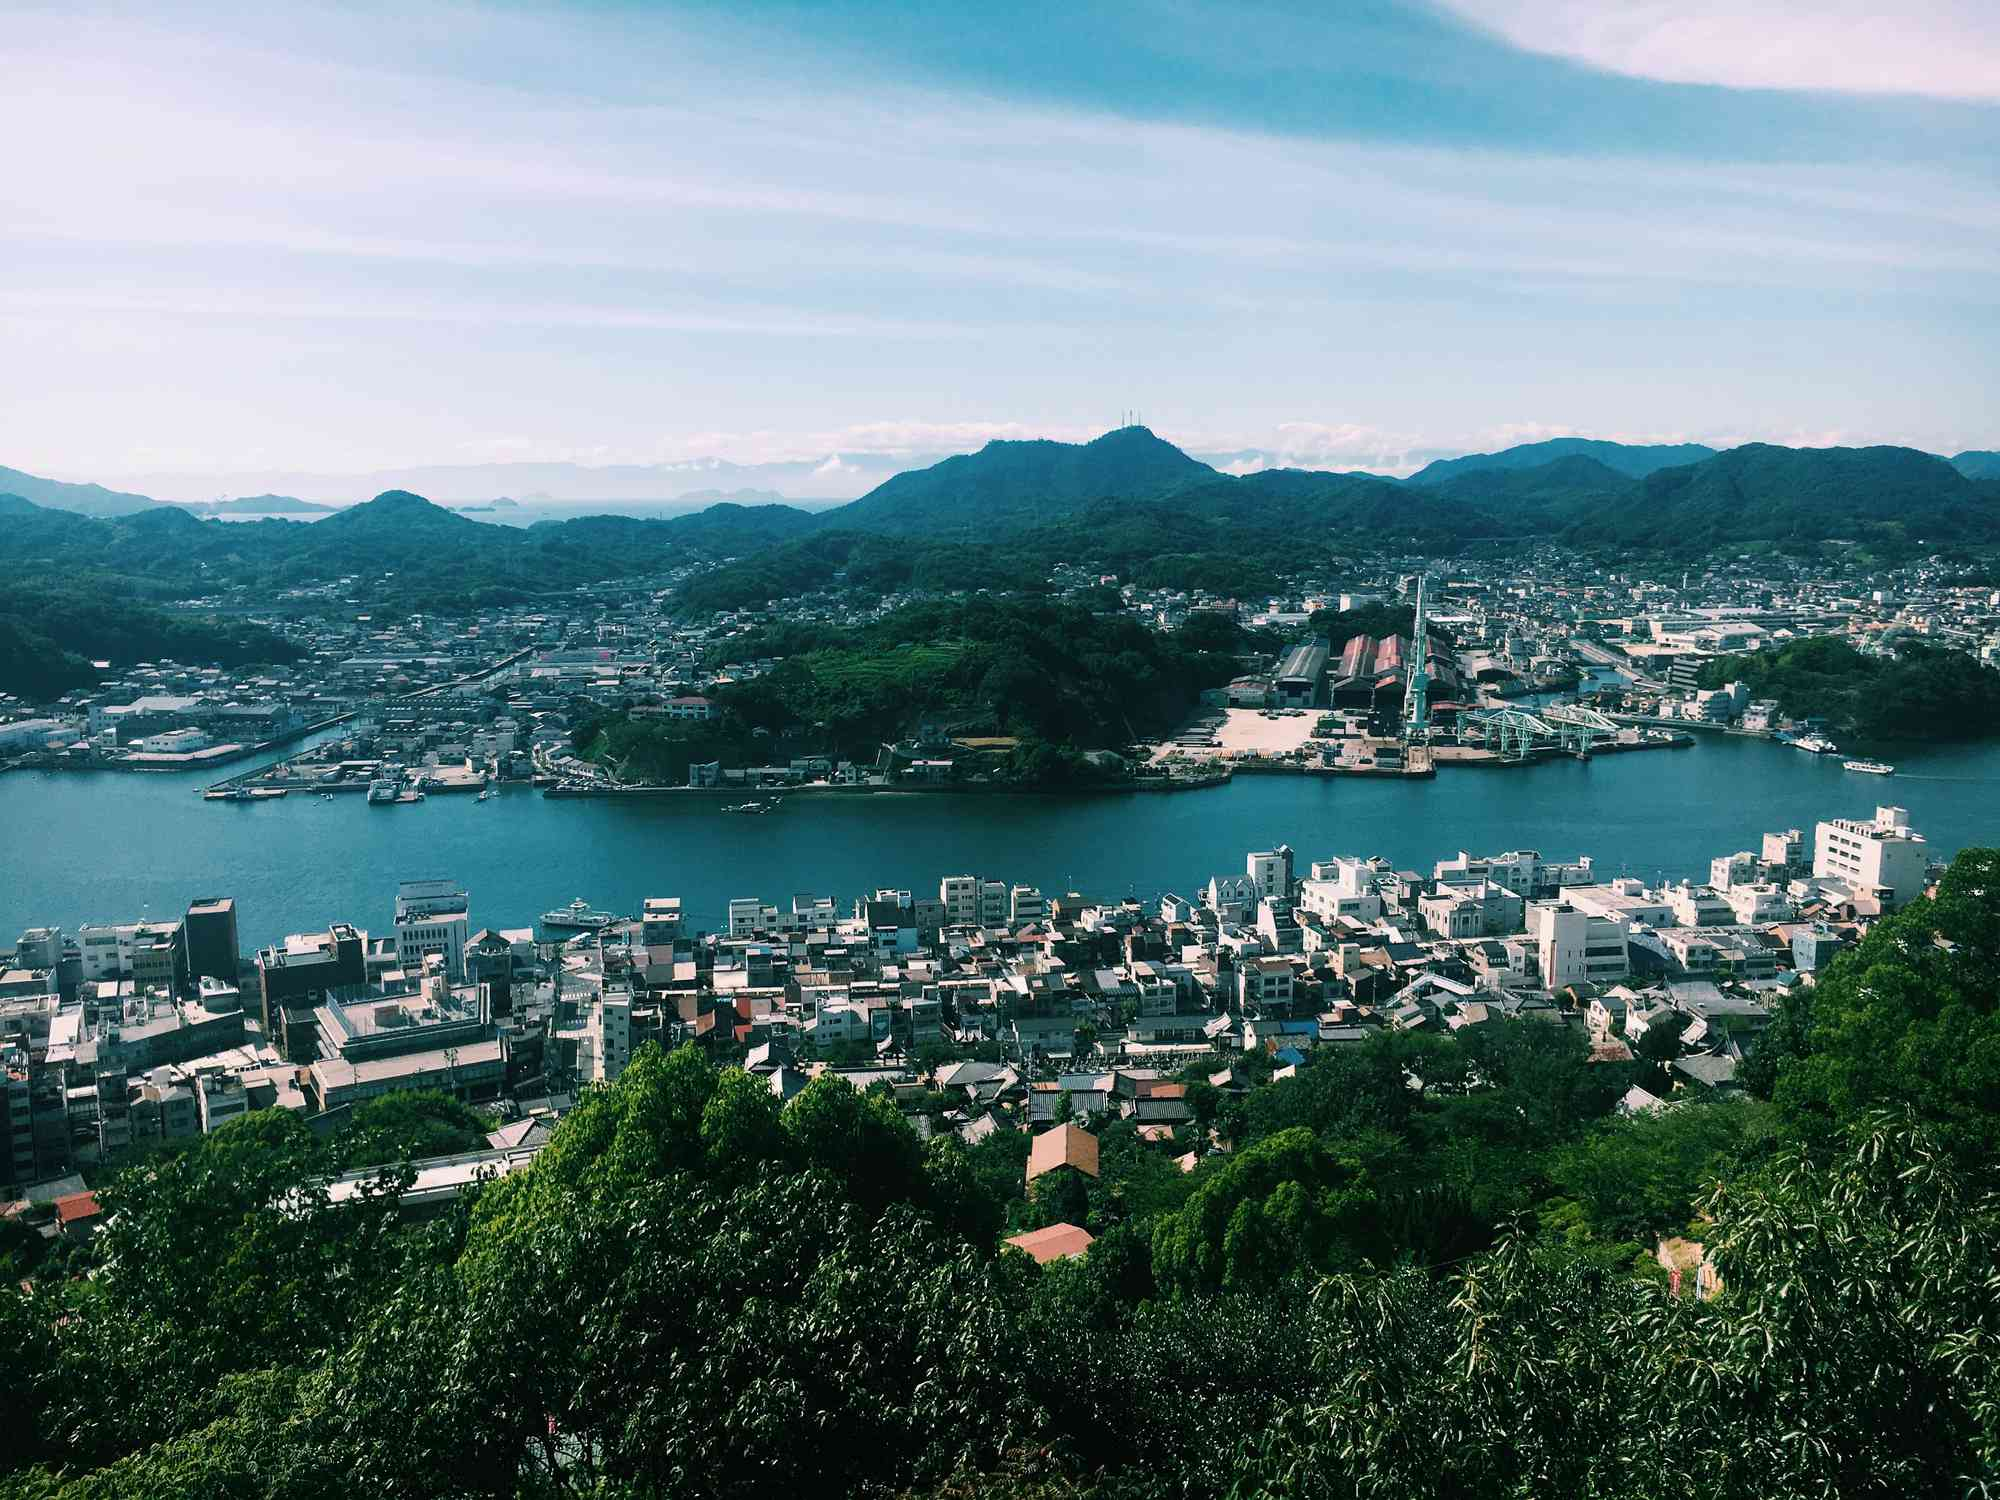 Onomichi city on a river photographed from afar